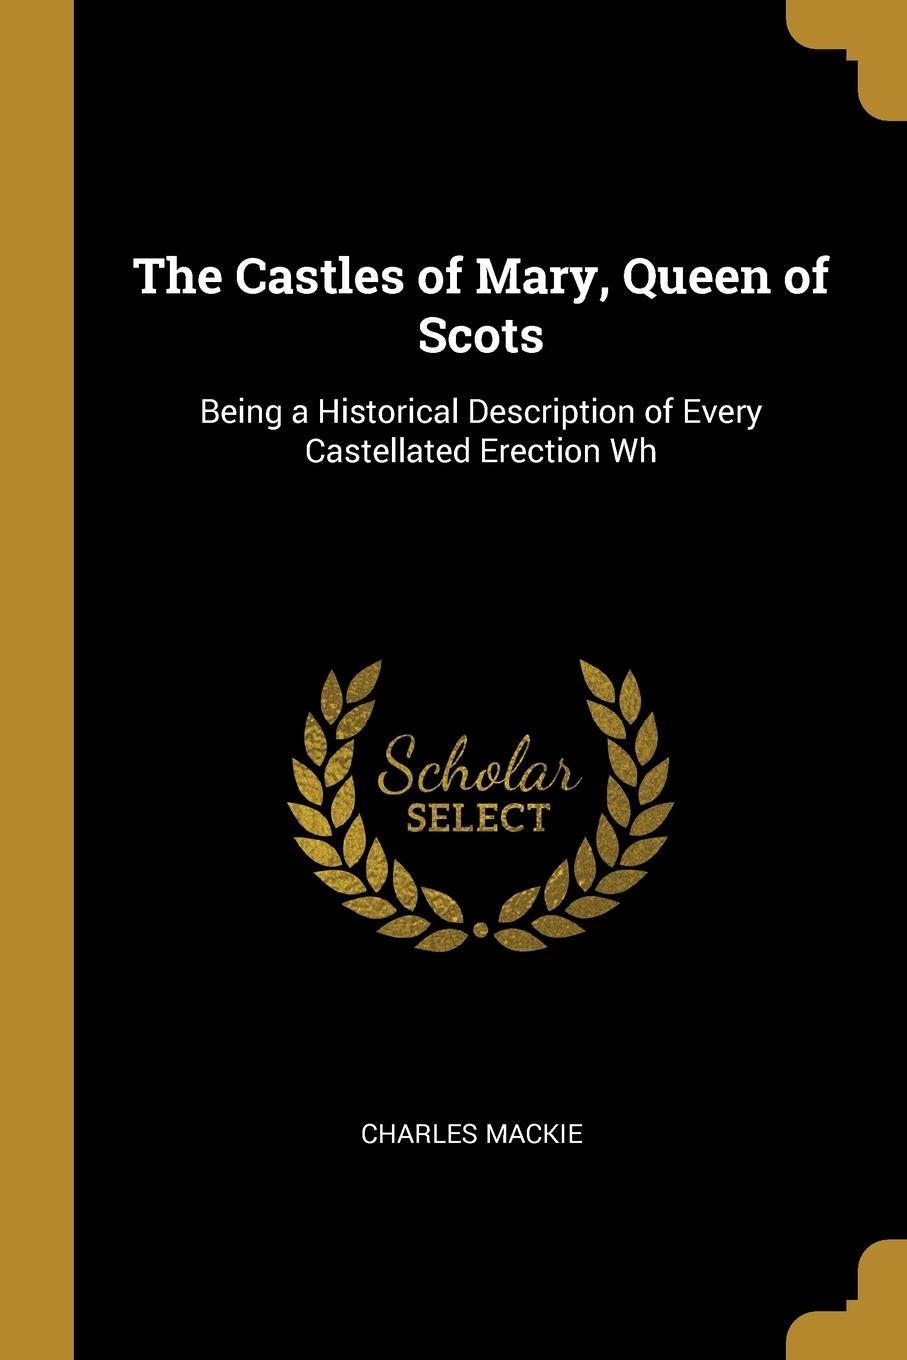 The Castles of Mary, Queen of Scots. Being a Historical Description of Every Castellated Erection Wh